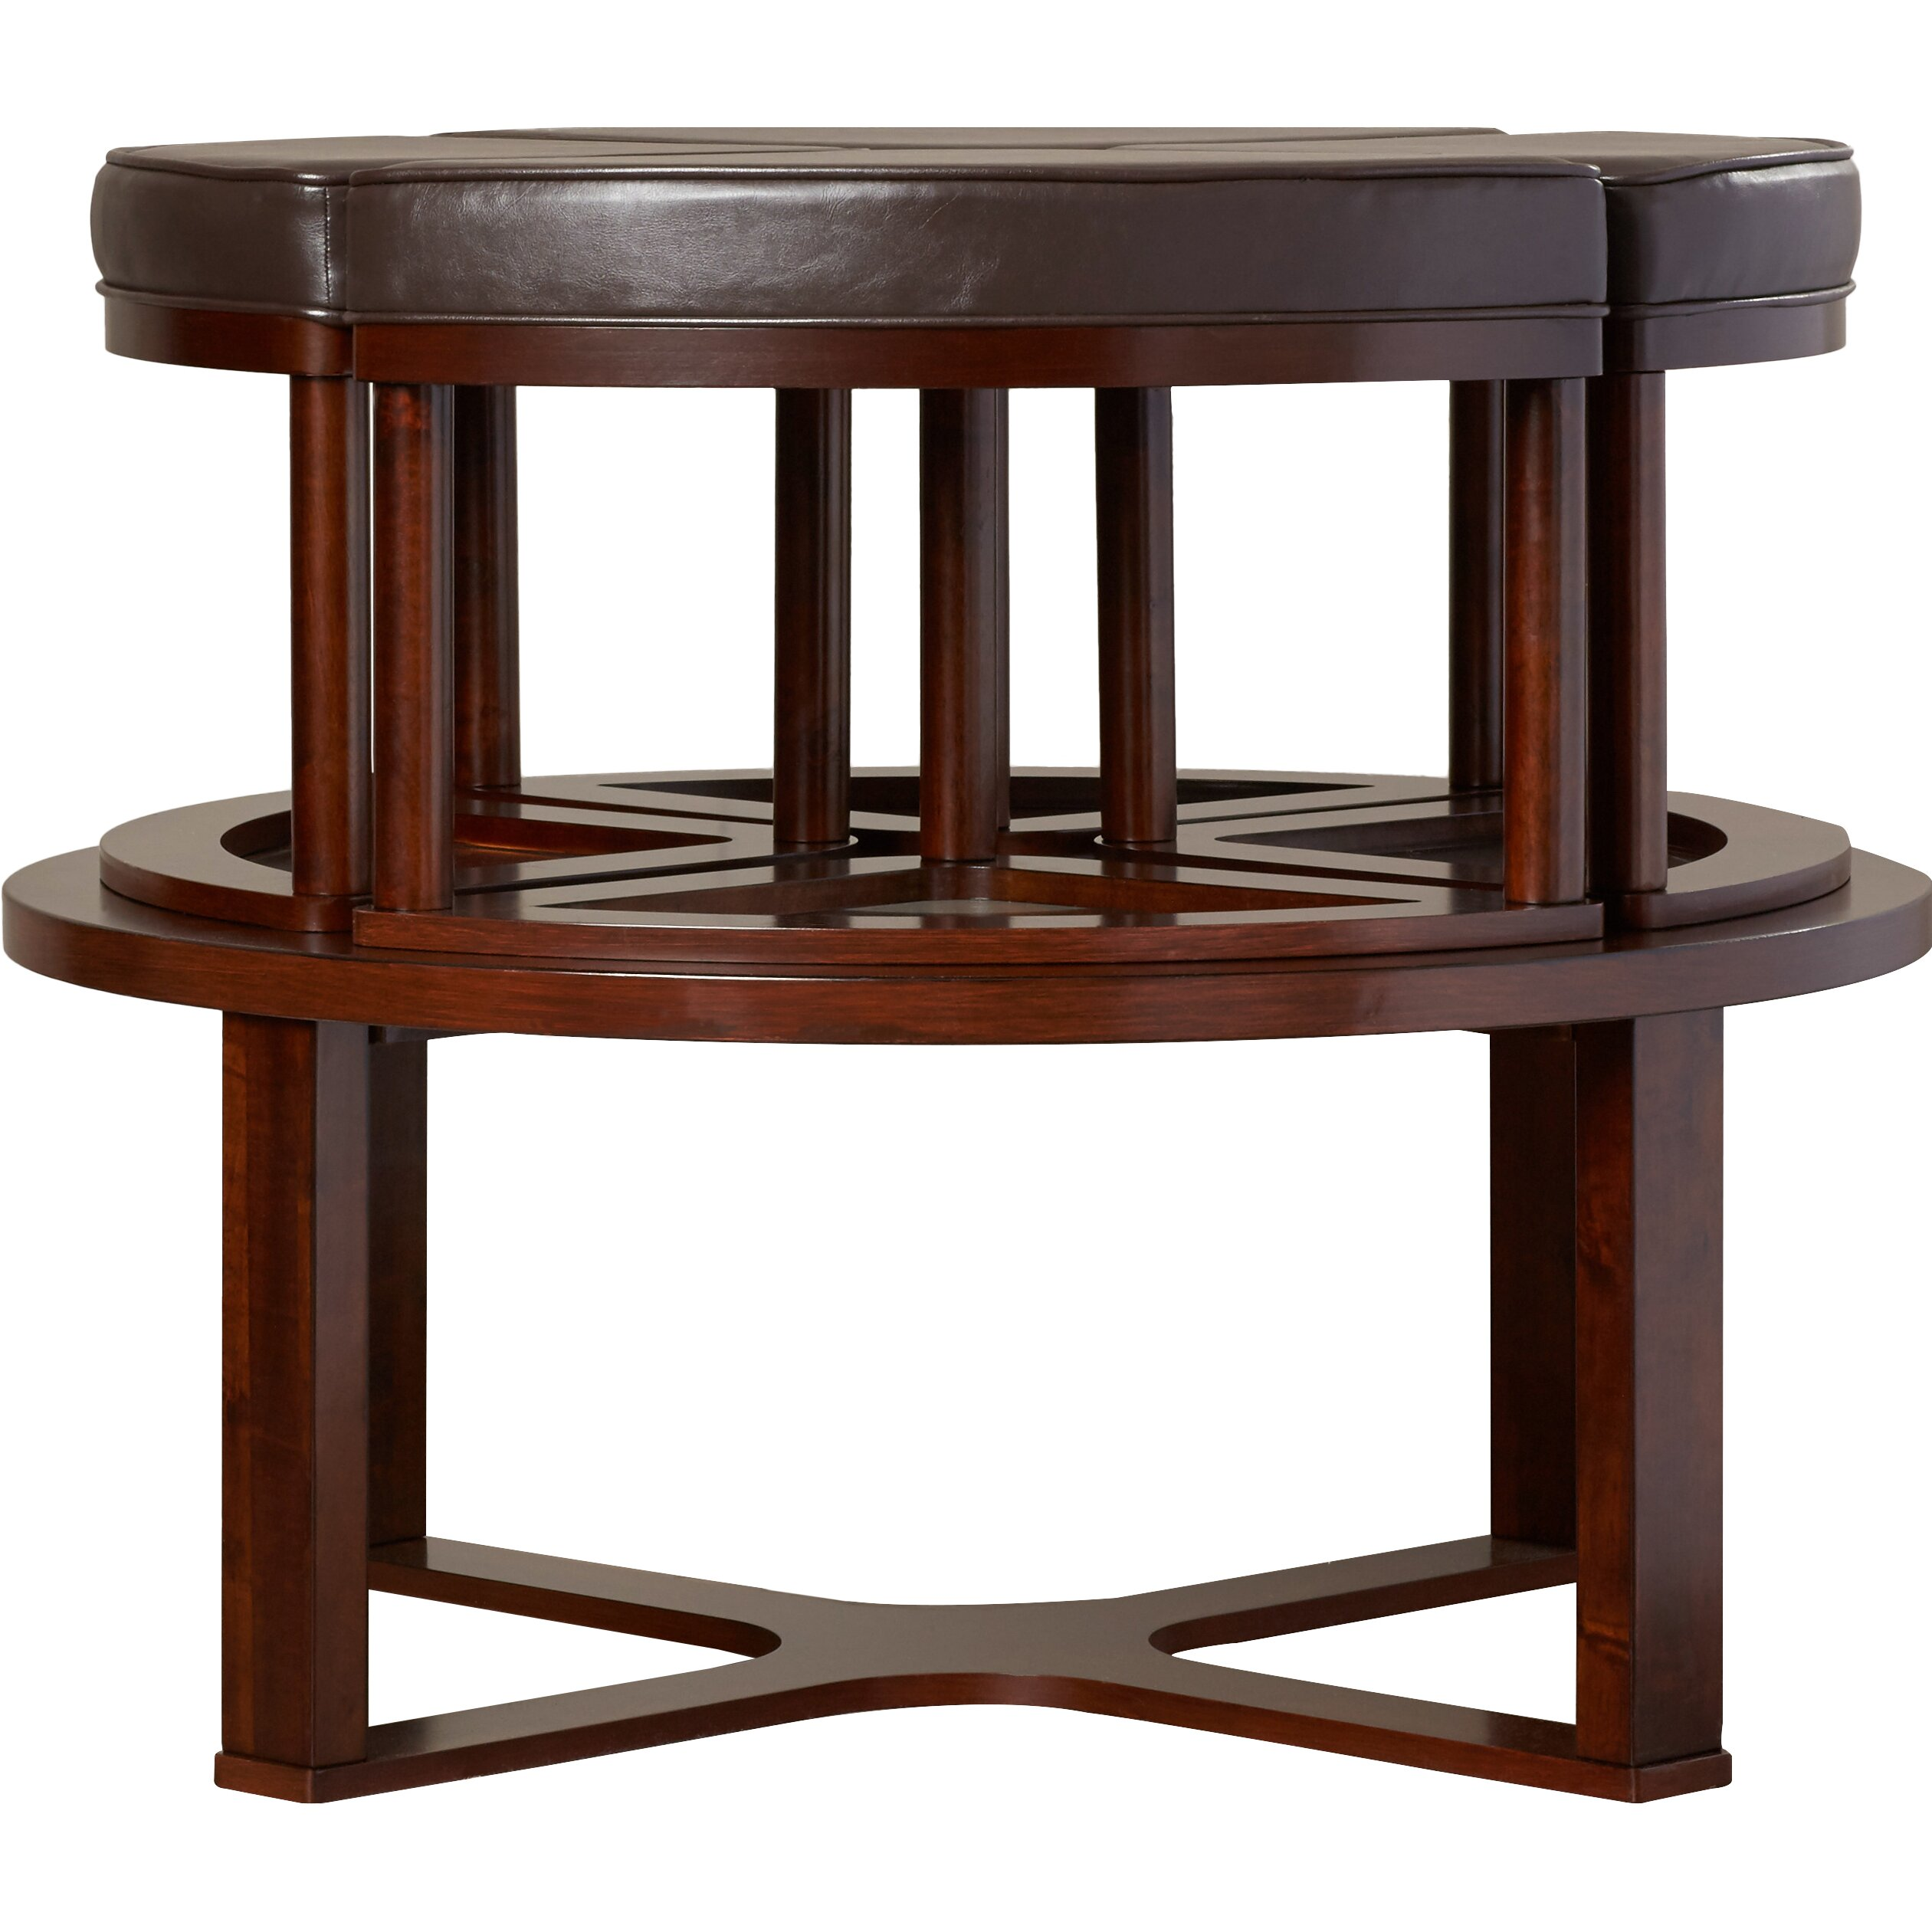 Darby Home Co Eastin 5 Piece Coffee Table Stool Set Reviews Wayfair